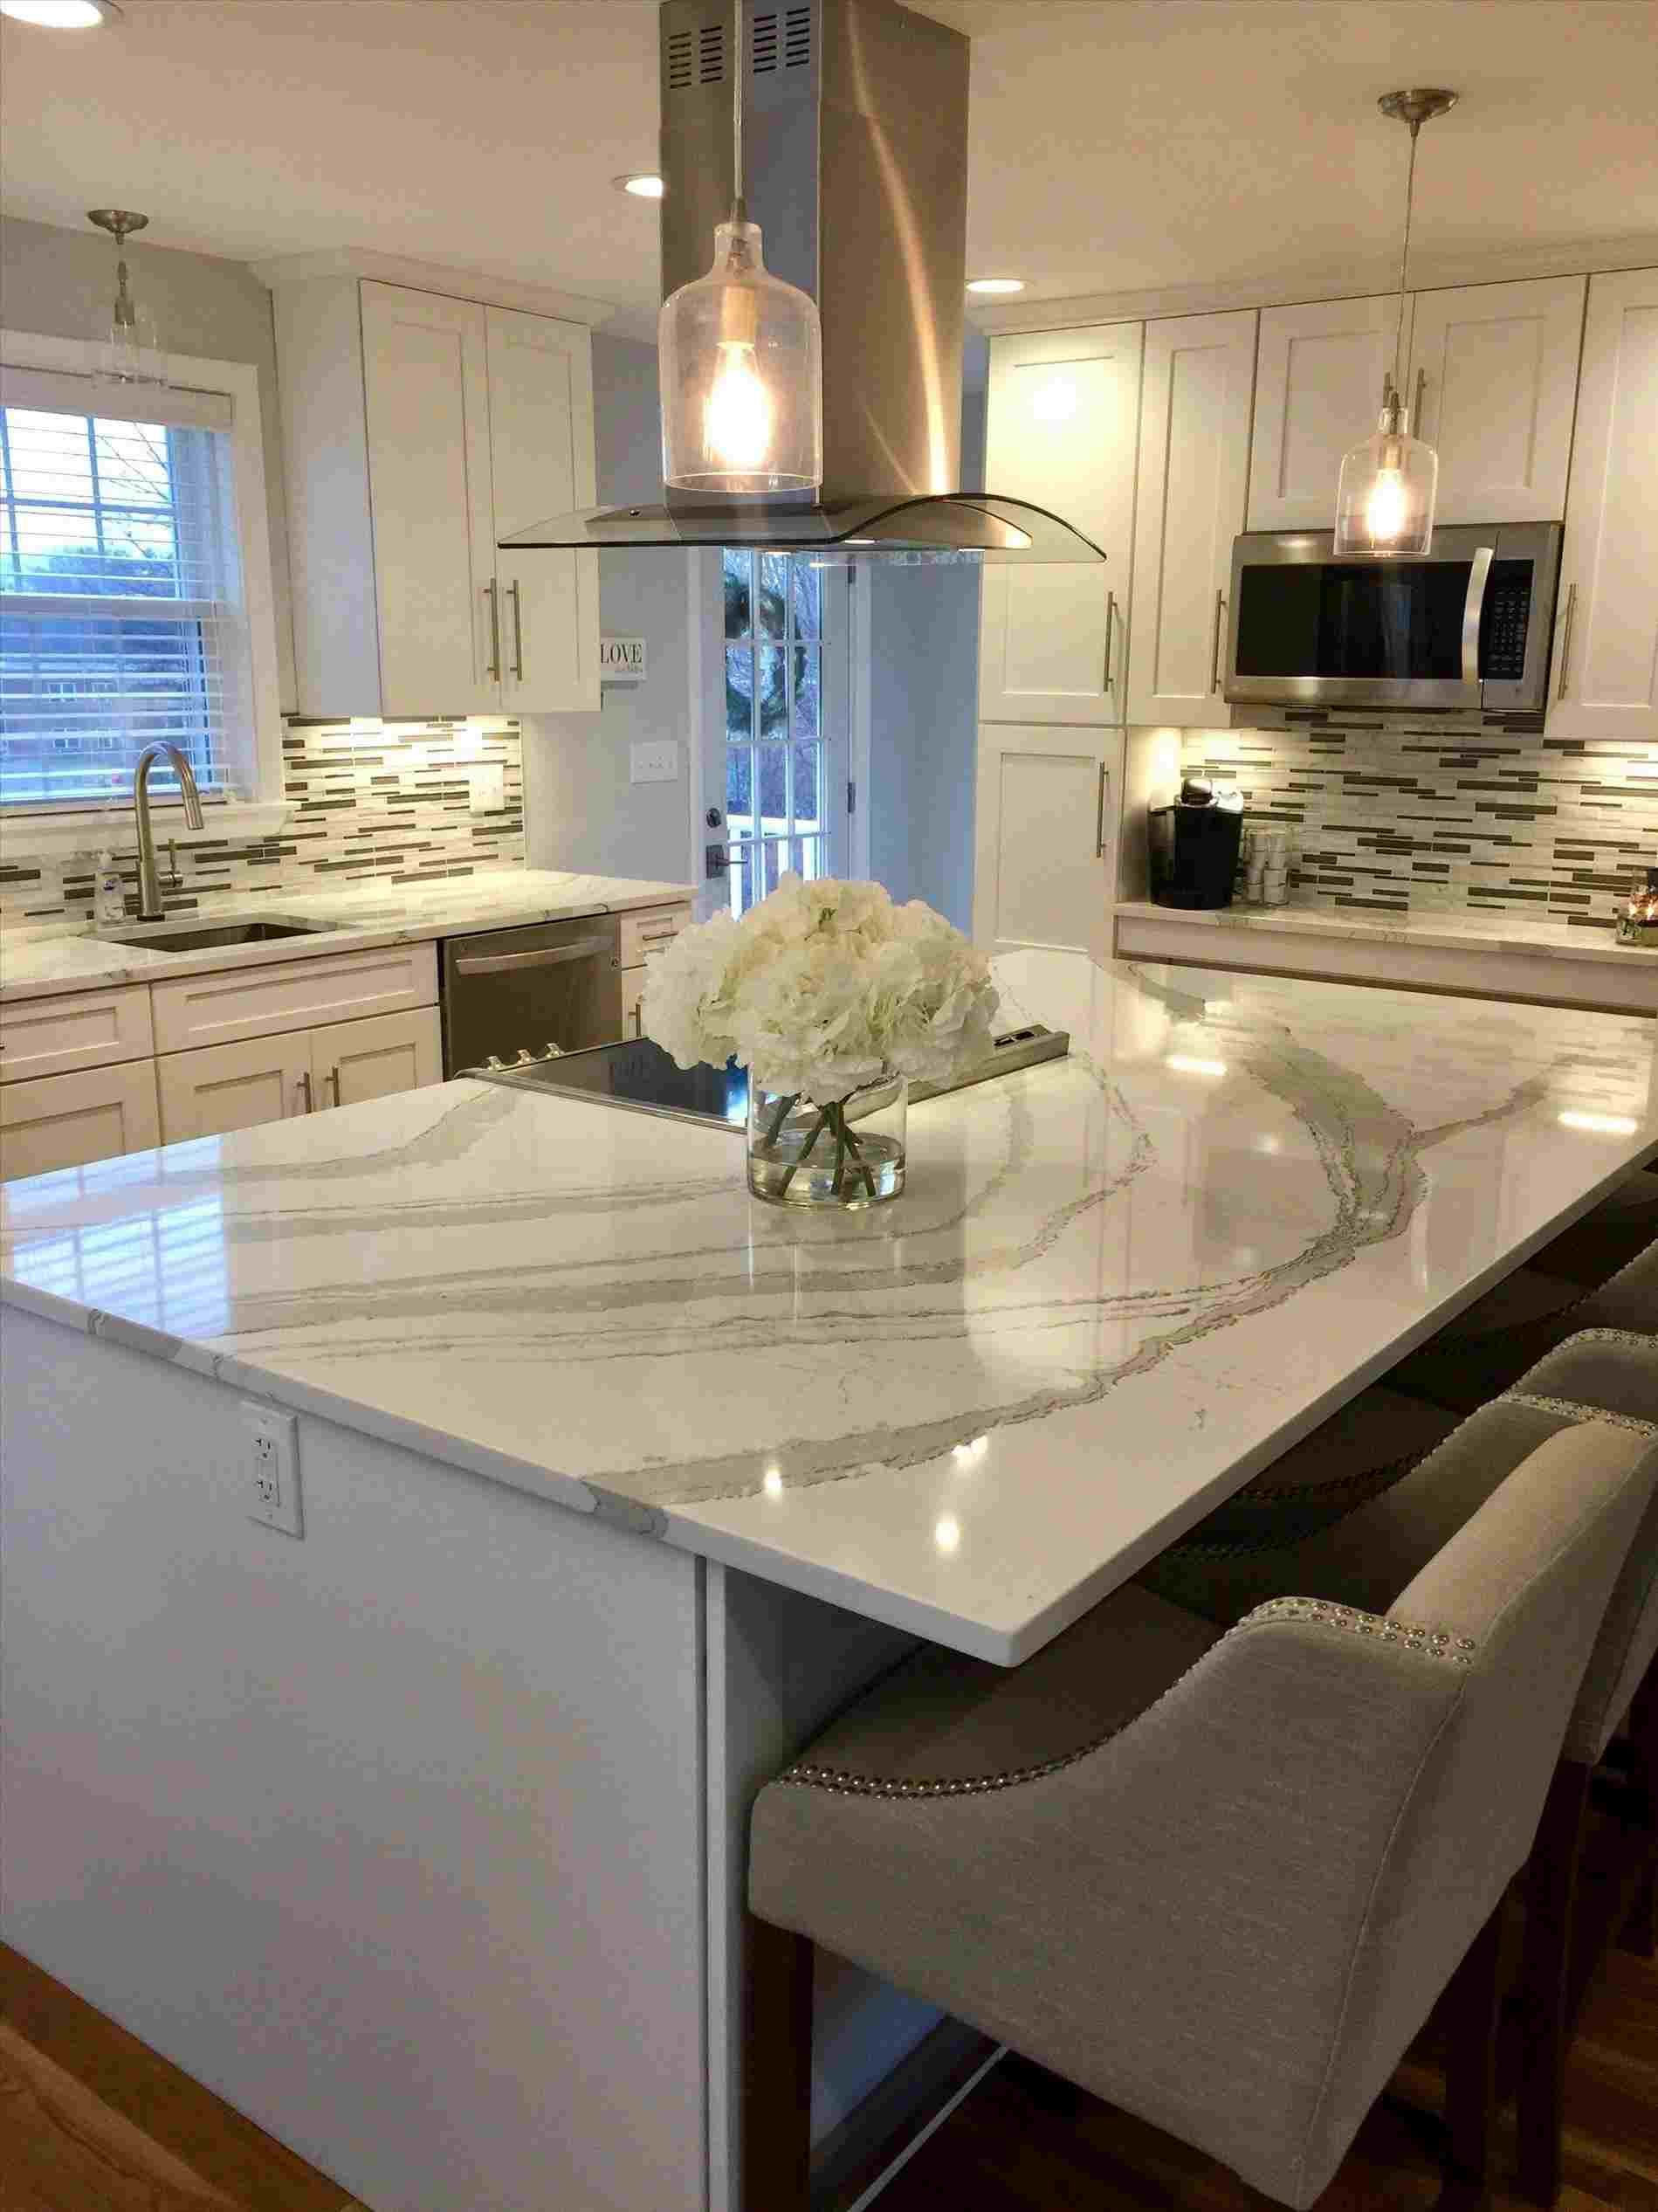 Off White Kitchen Cabinets With Butcher Block Countertops : off white kitchen cabinets with butcher block countertops Kitchen di 2019 Rumah, Dapur, dan ...